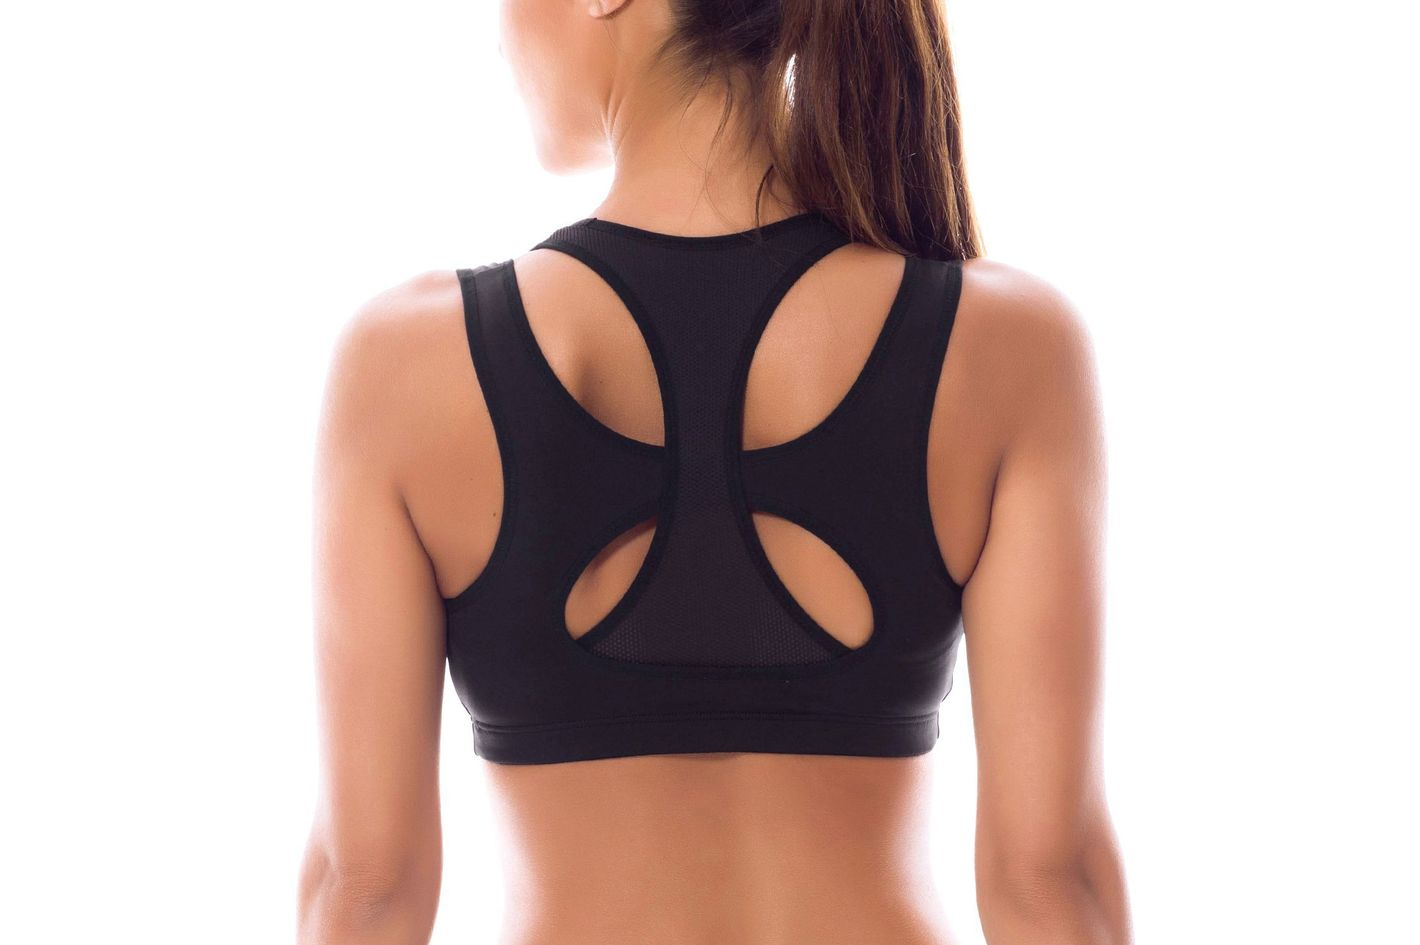 dd5e78cfc5121 SYROKAN Women s High Impact Support Wirefree Workout Racerback Sports Bra  Top